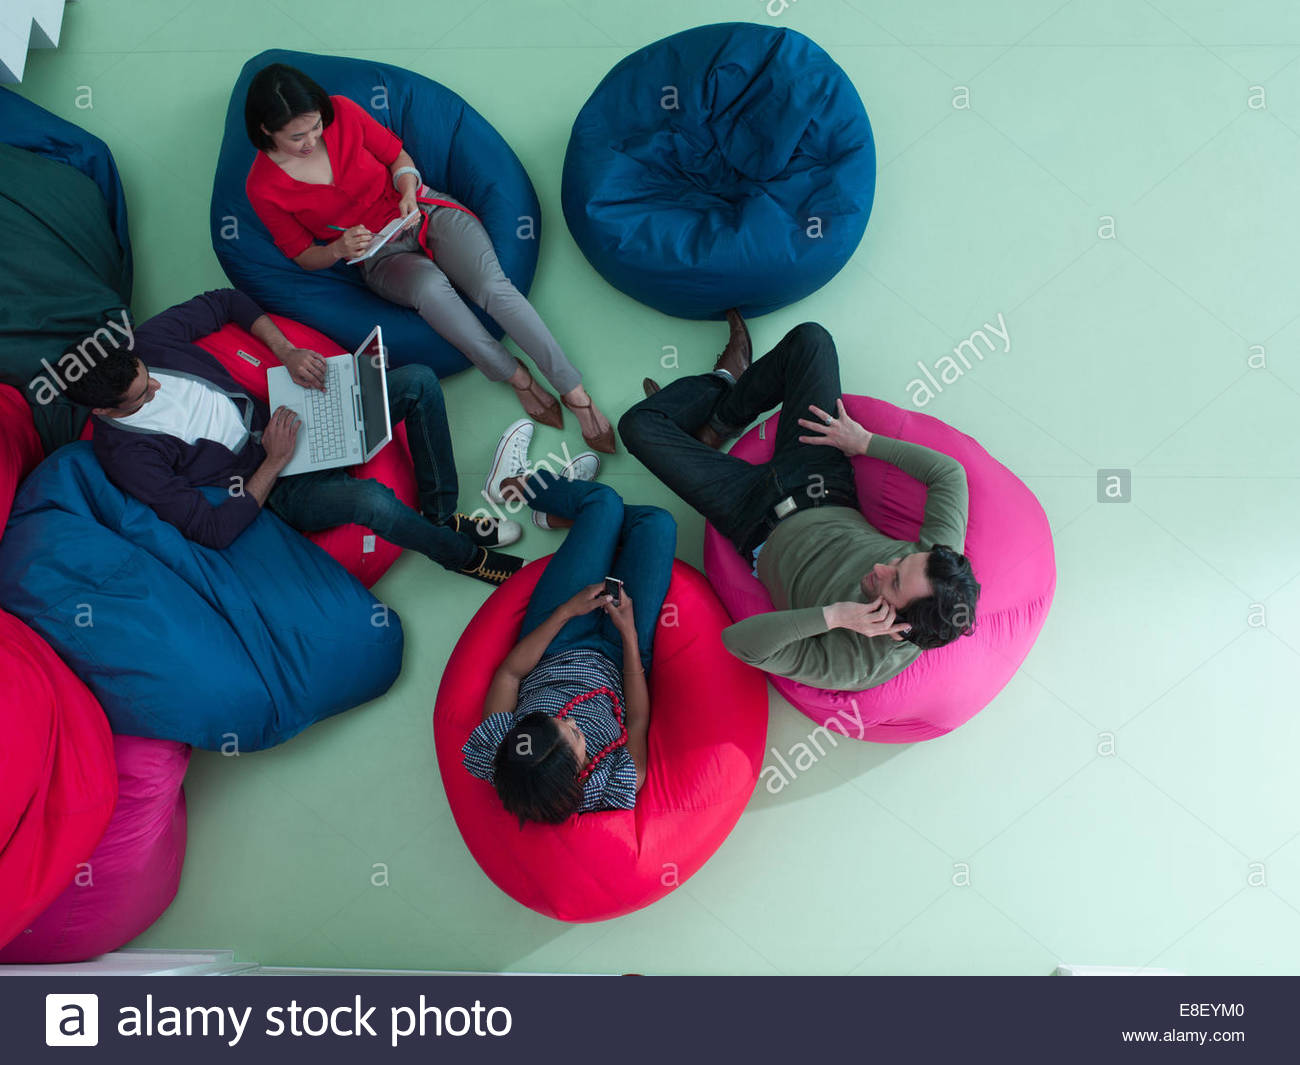 Men and women using laptop and cell phones in bean bag chairs - Stock Image